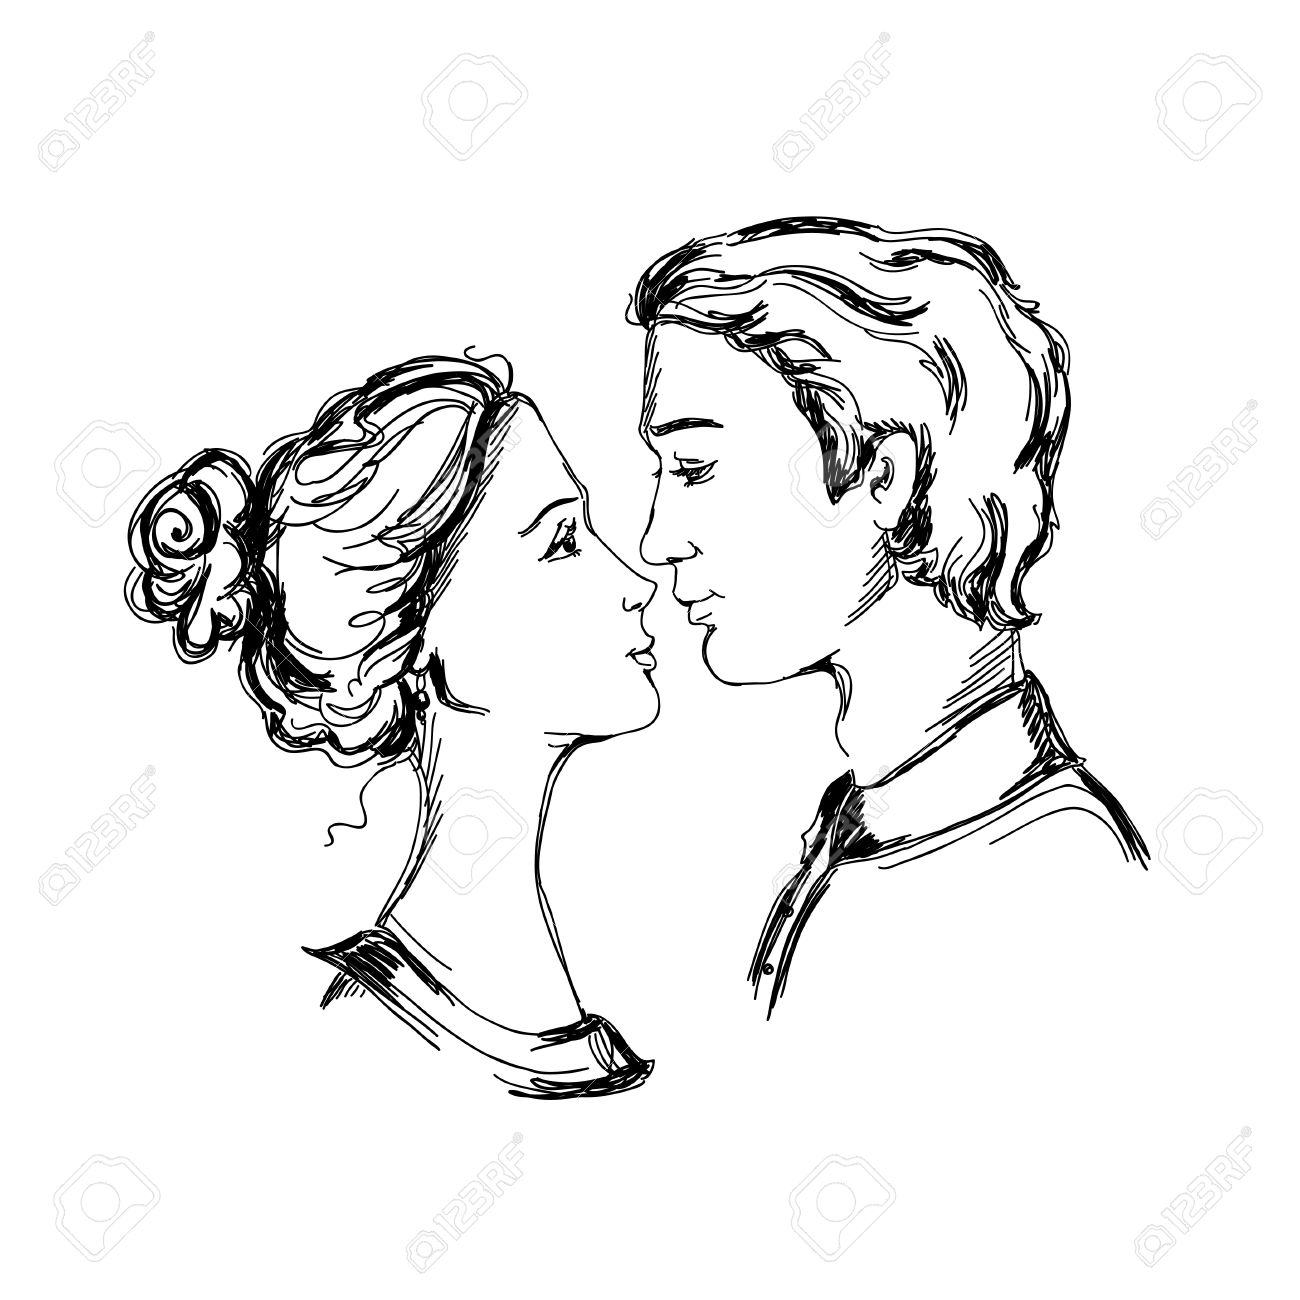 1300x1300 Sketch Of Loving Couple Man And Woman Are Looking At Each Other